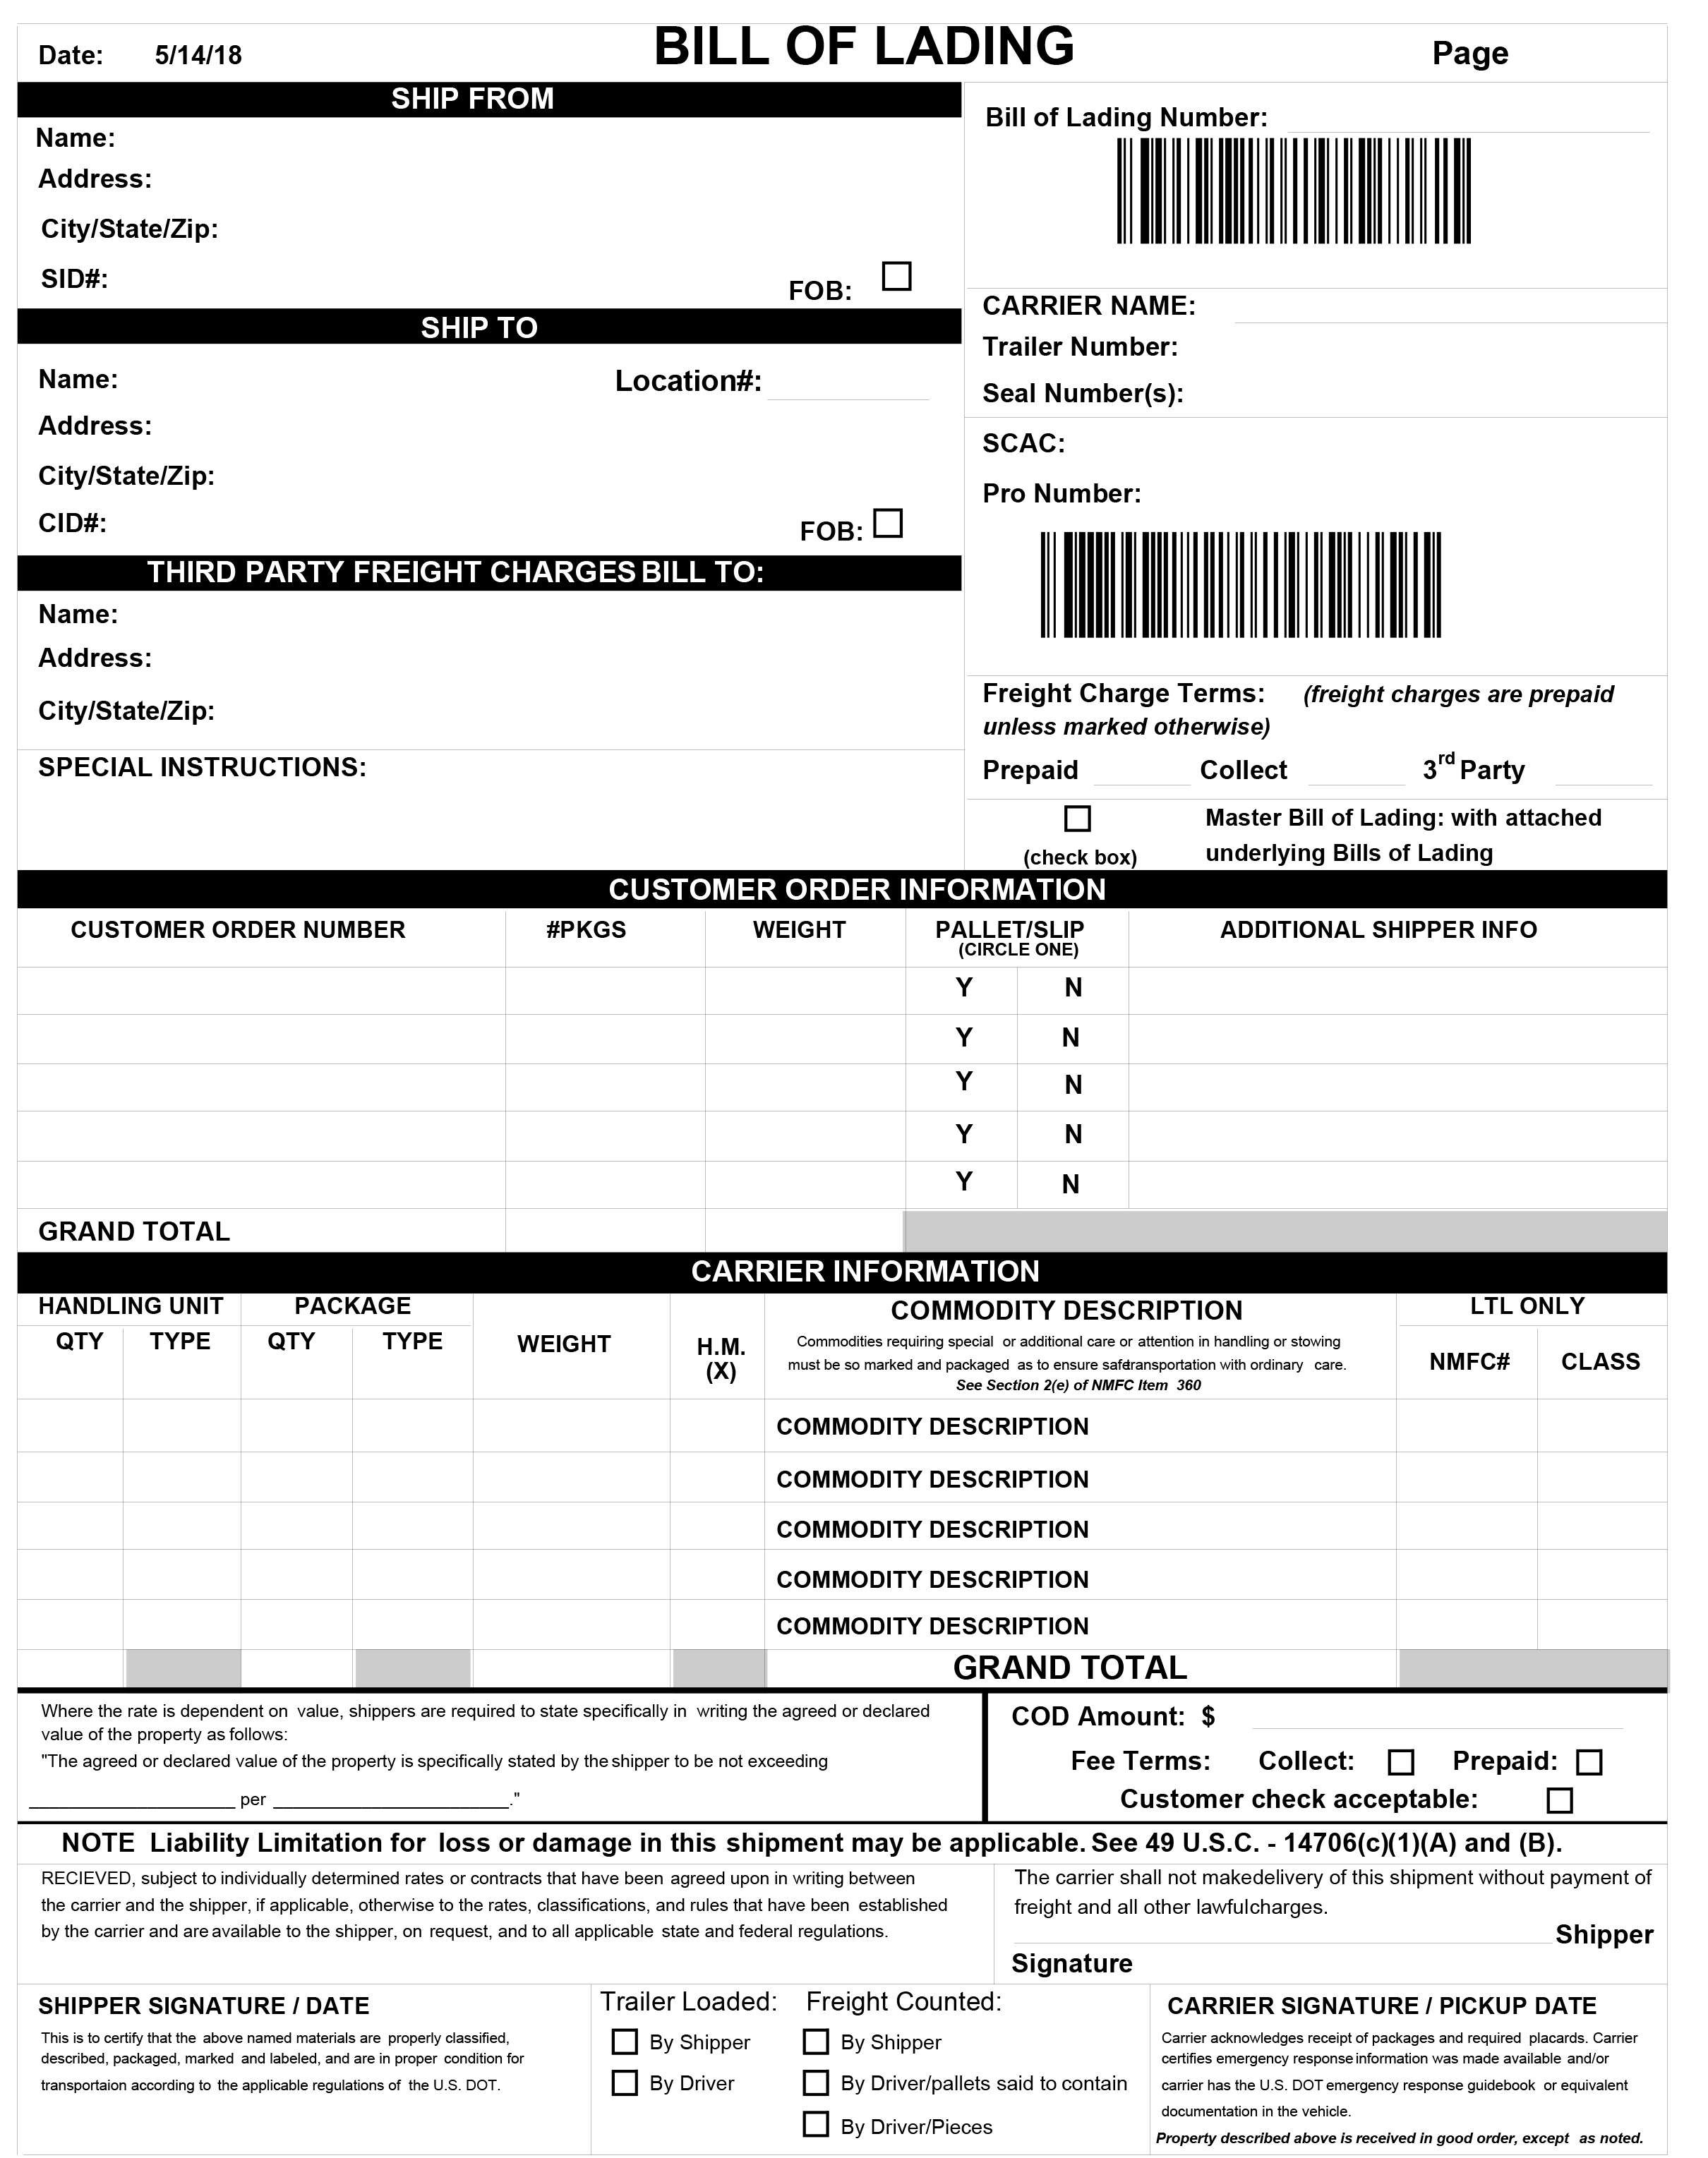 Turn your regular forms into dynamic, fully customized documents.